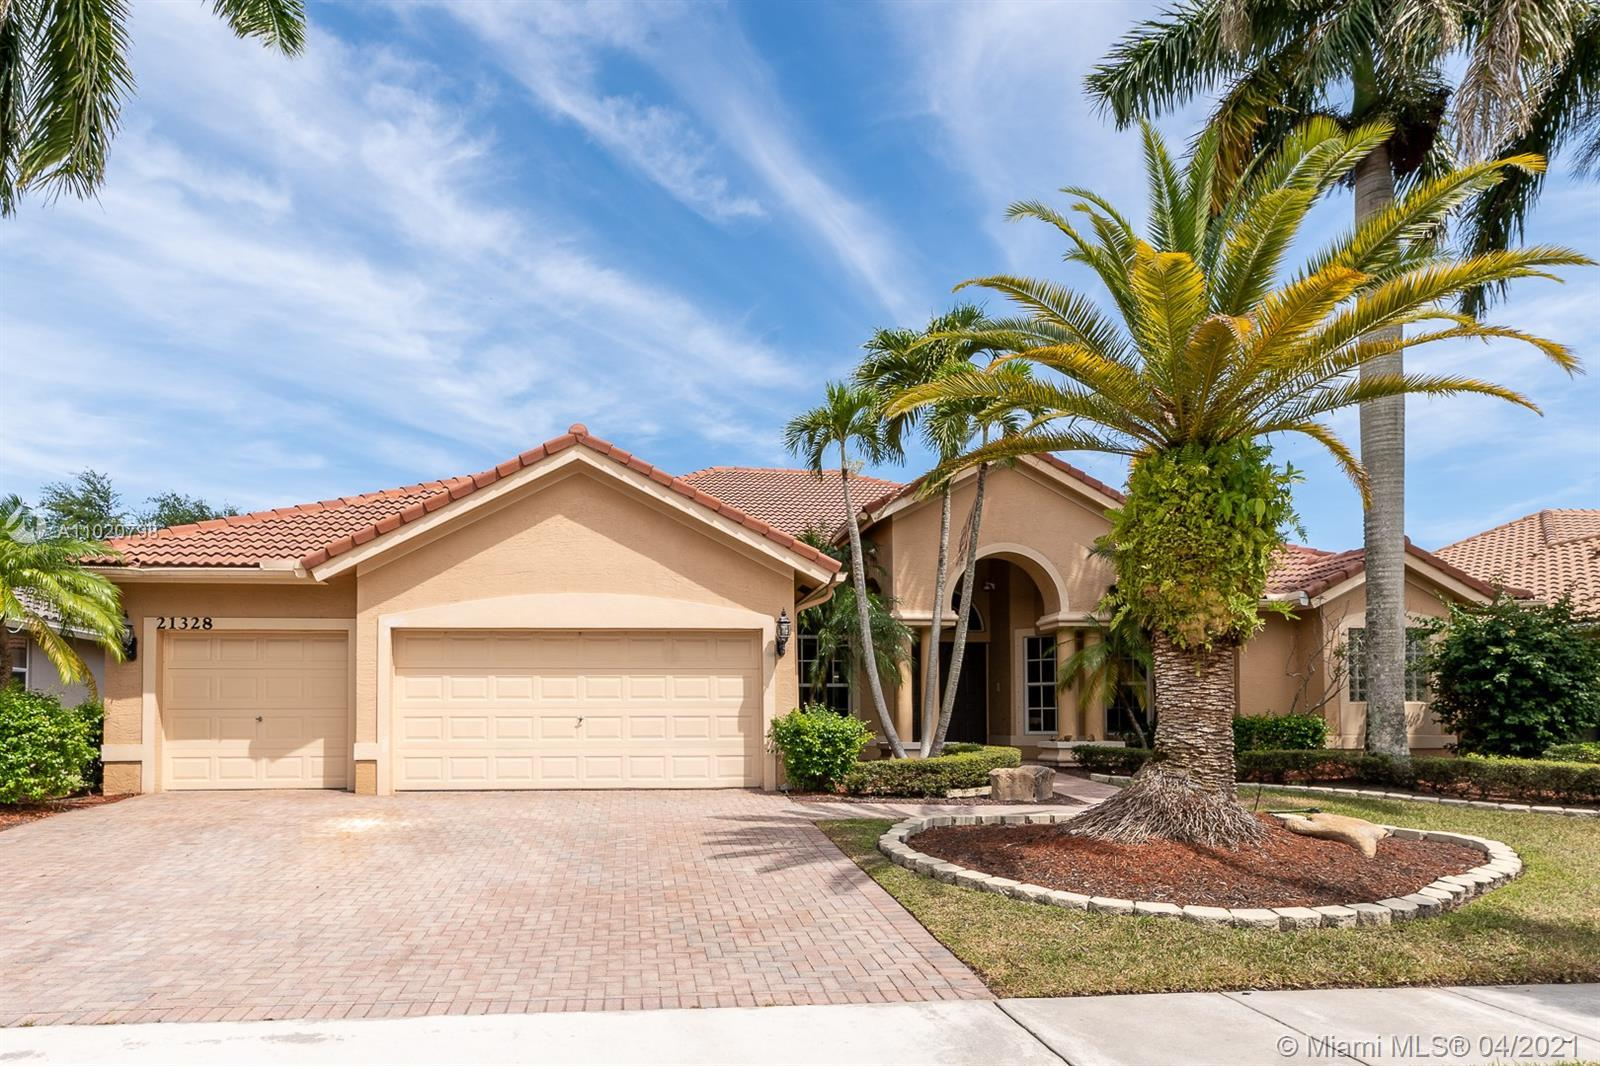 Largest ranch model in Boca Falls located in the most desirable neighborhood – Estates. Open floor p